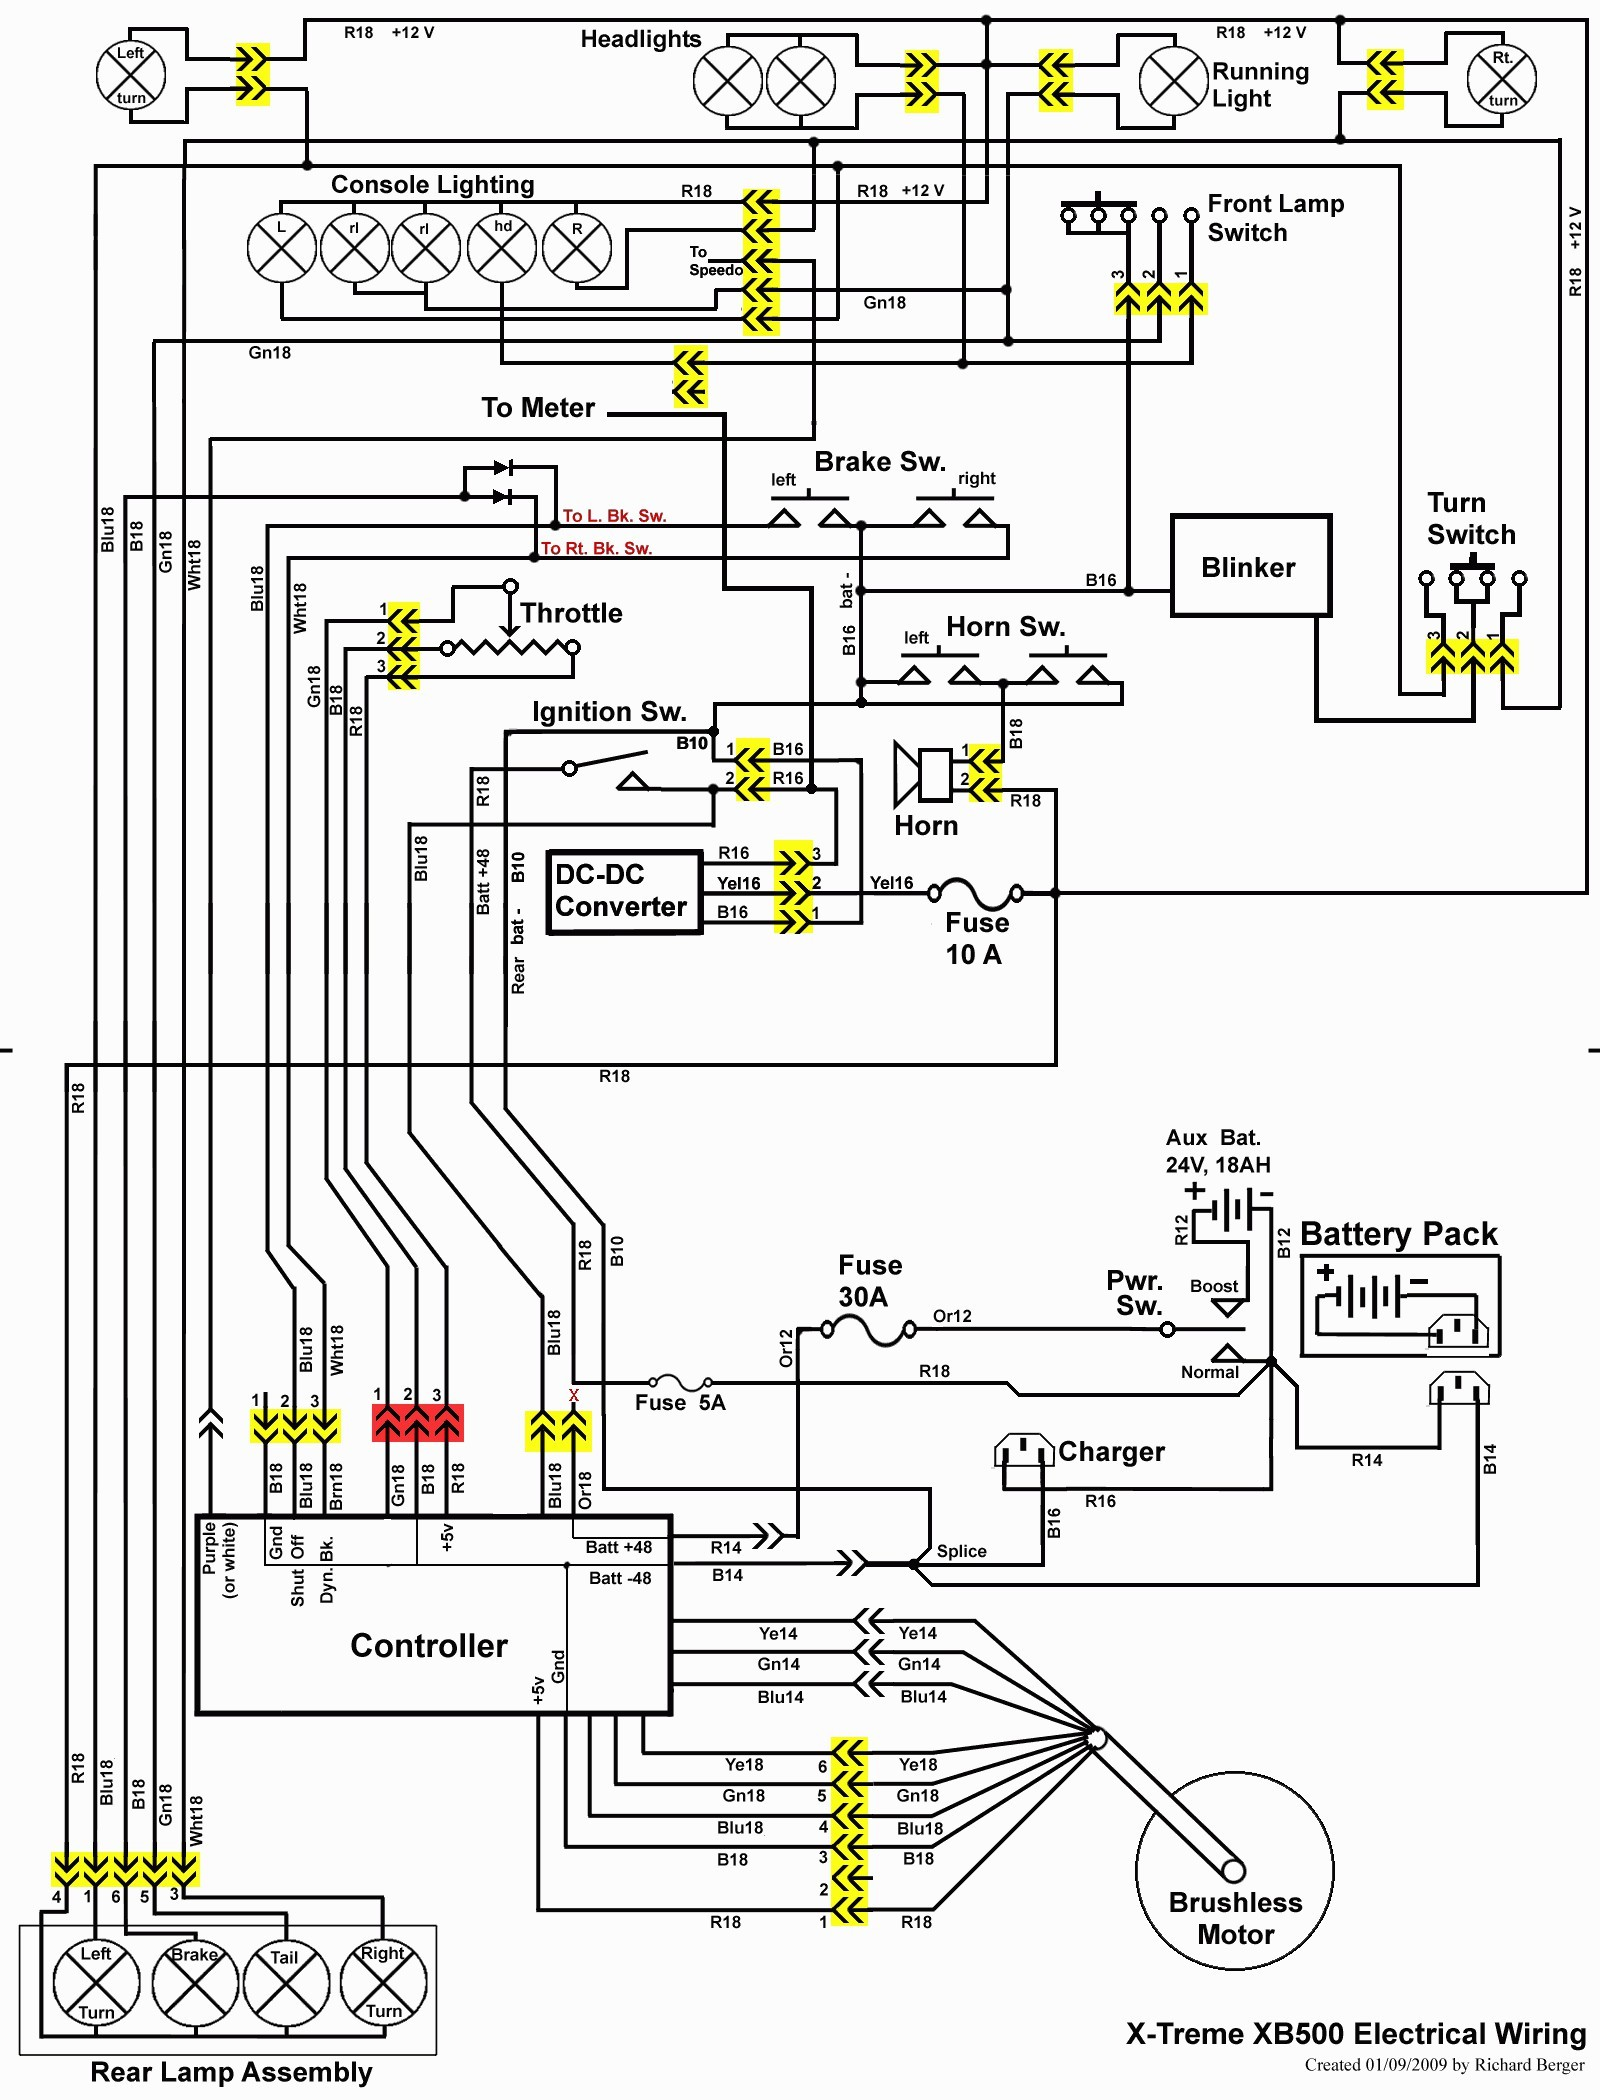 hight resolution of 48 volt 2003 club car wiring diagram dsl model electrical wiring yamaha golf cart 36 volt 1997